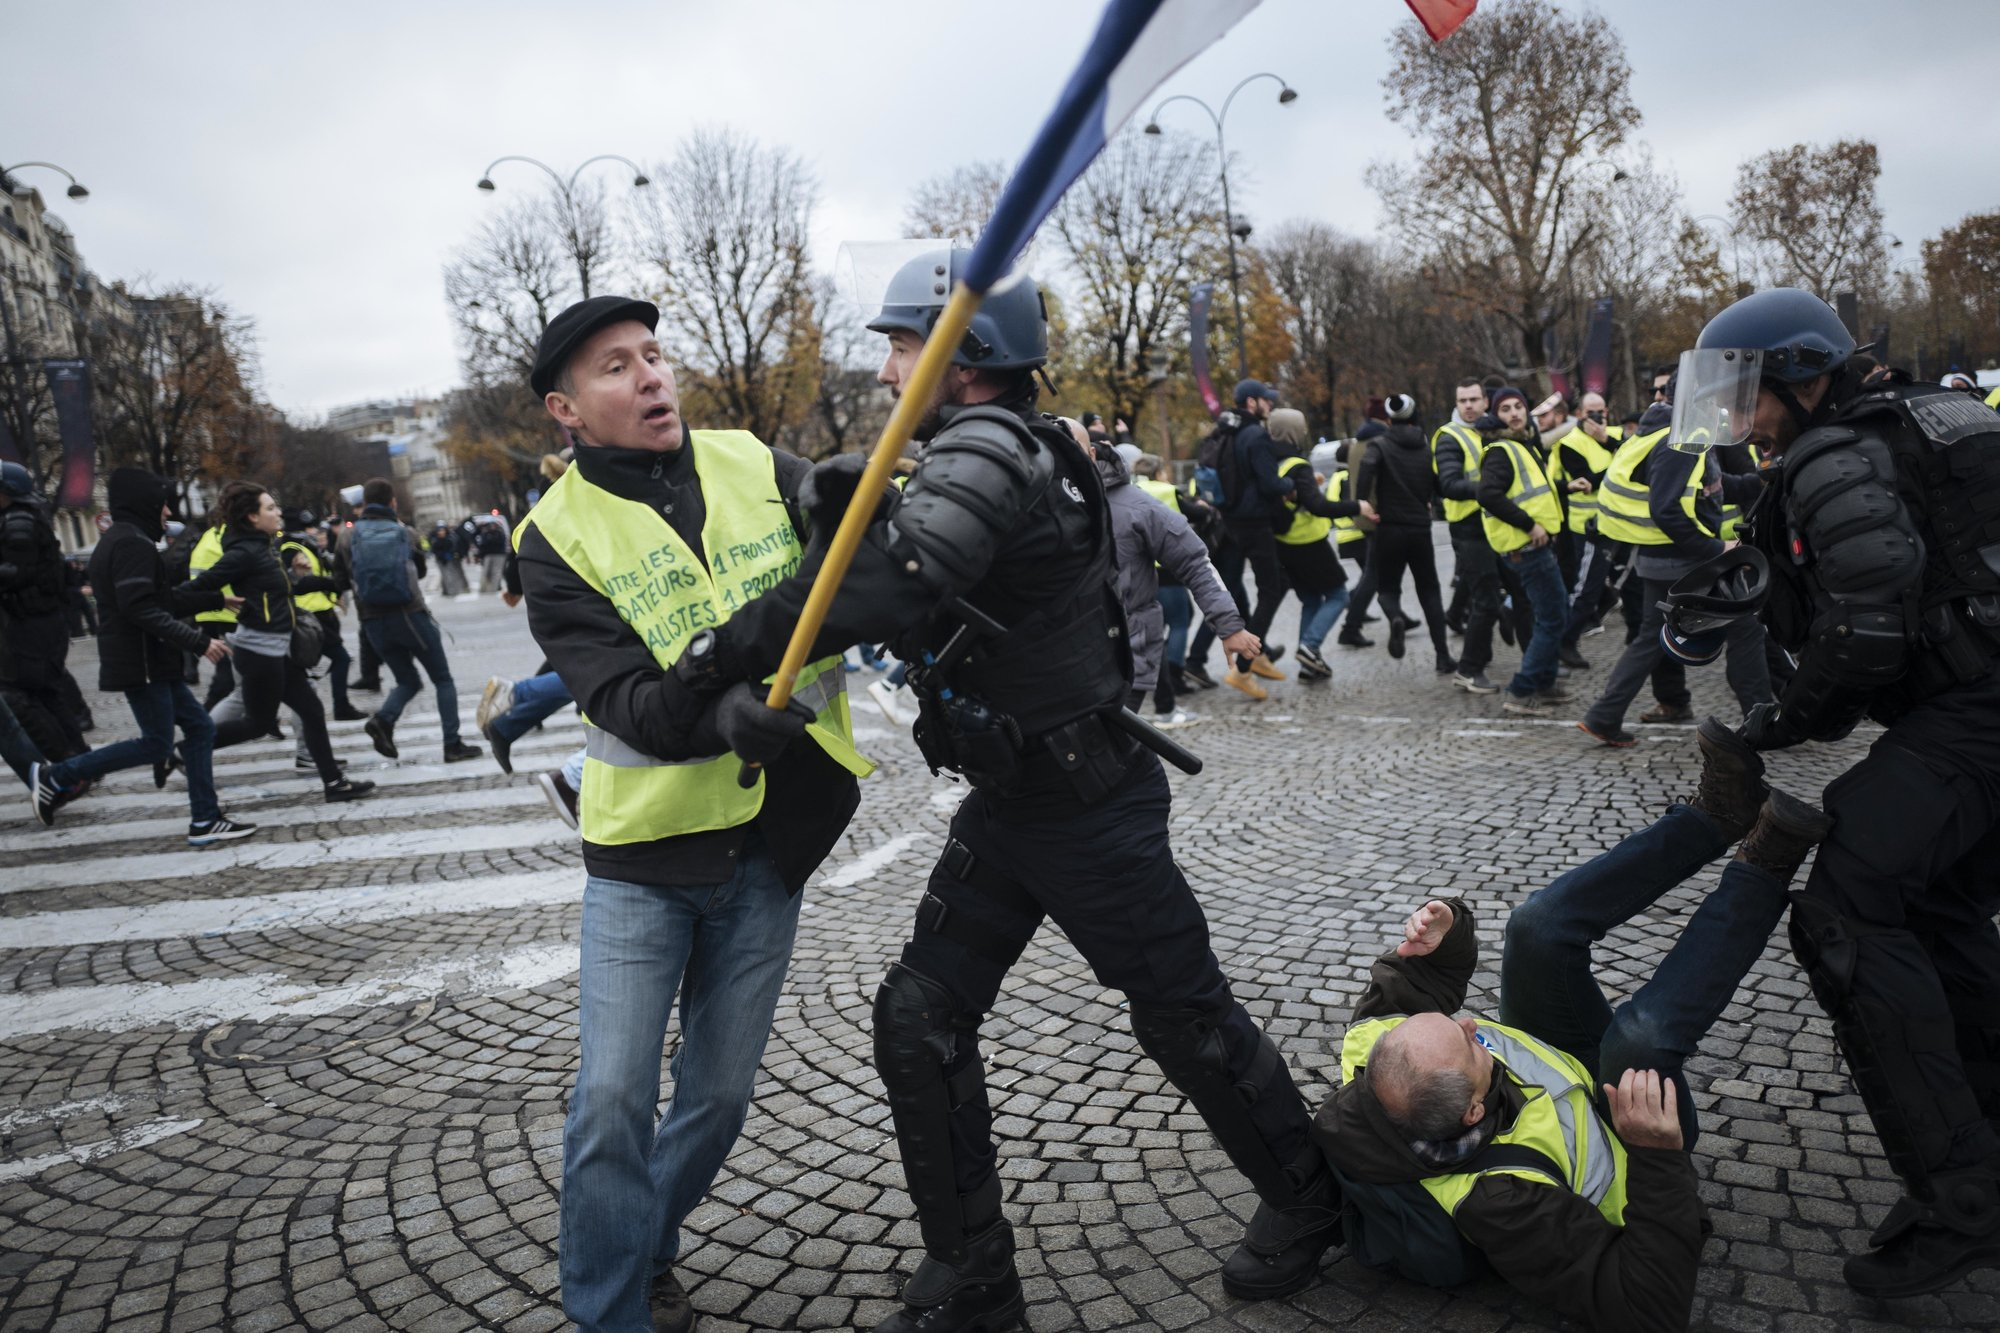 France's Macron set to unveil new measures for 'Yellow Vest'